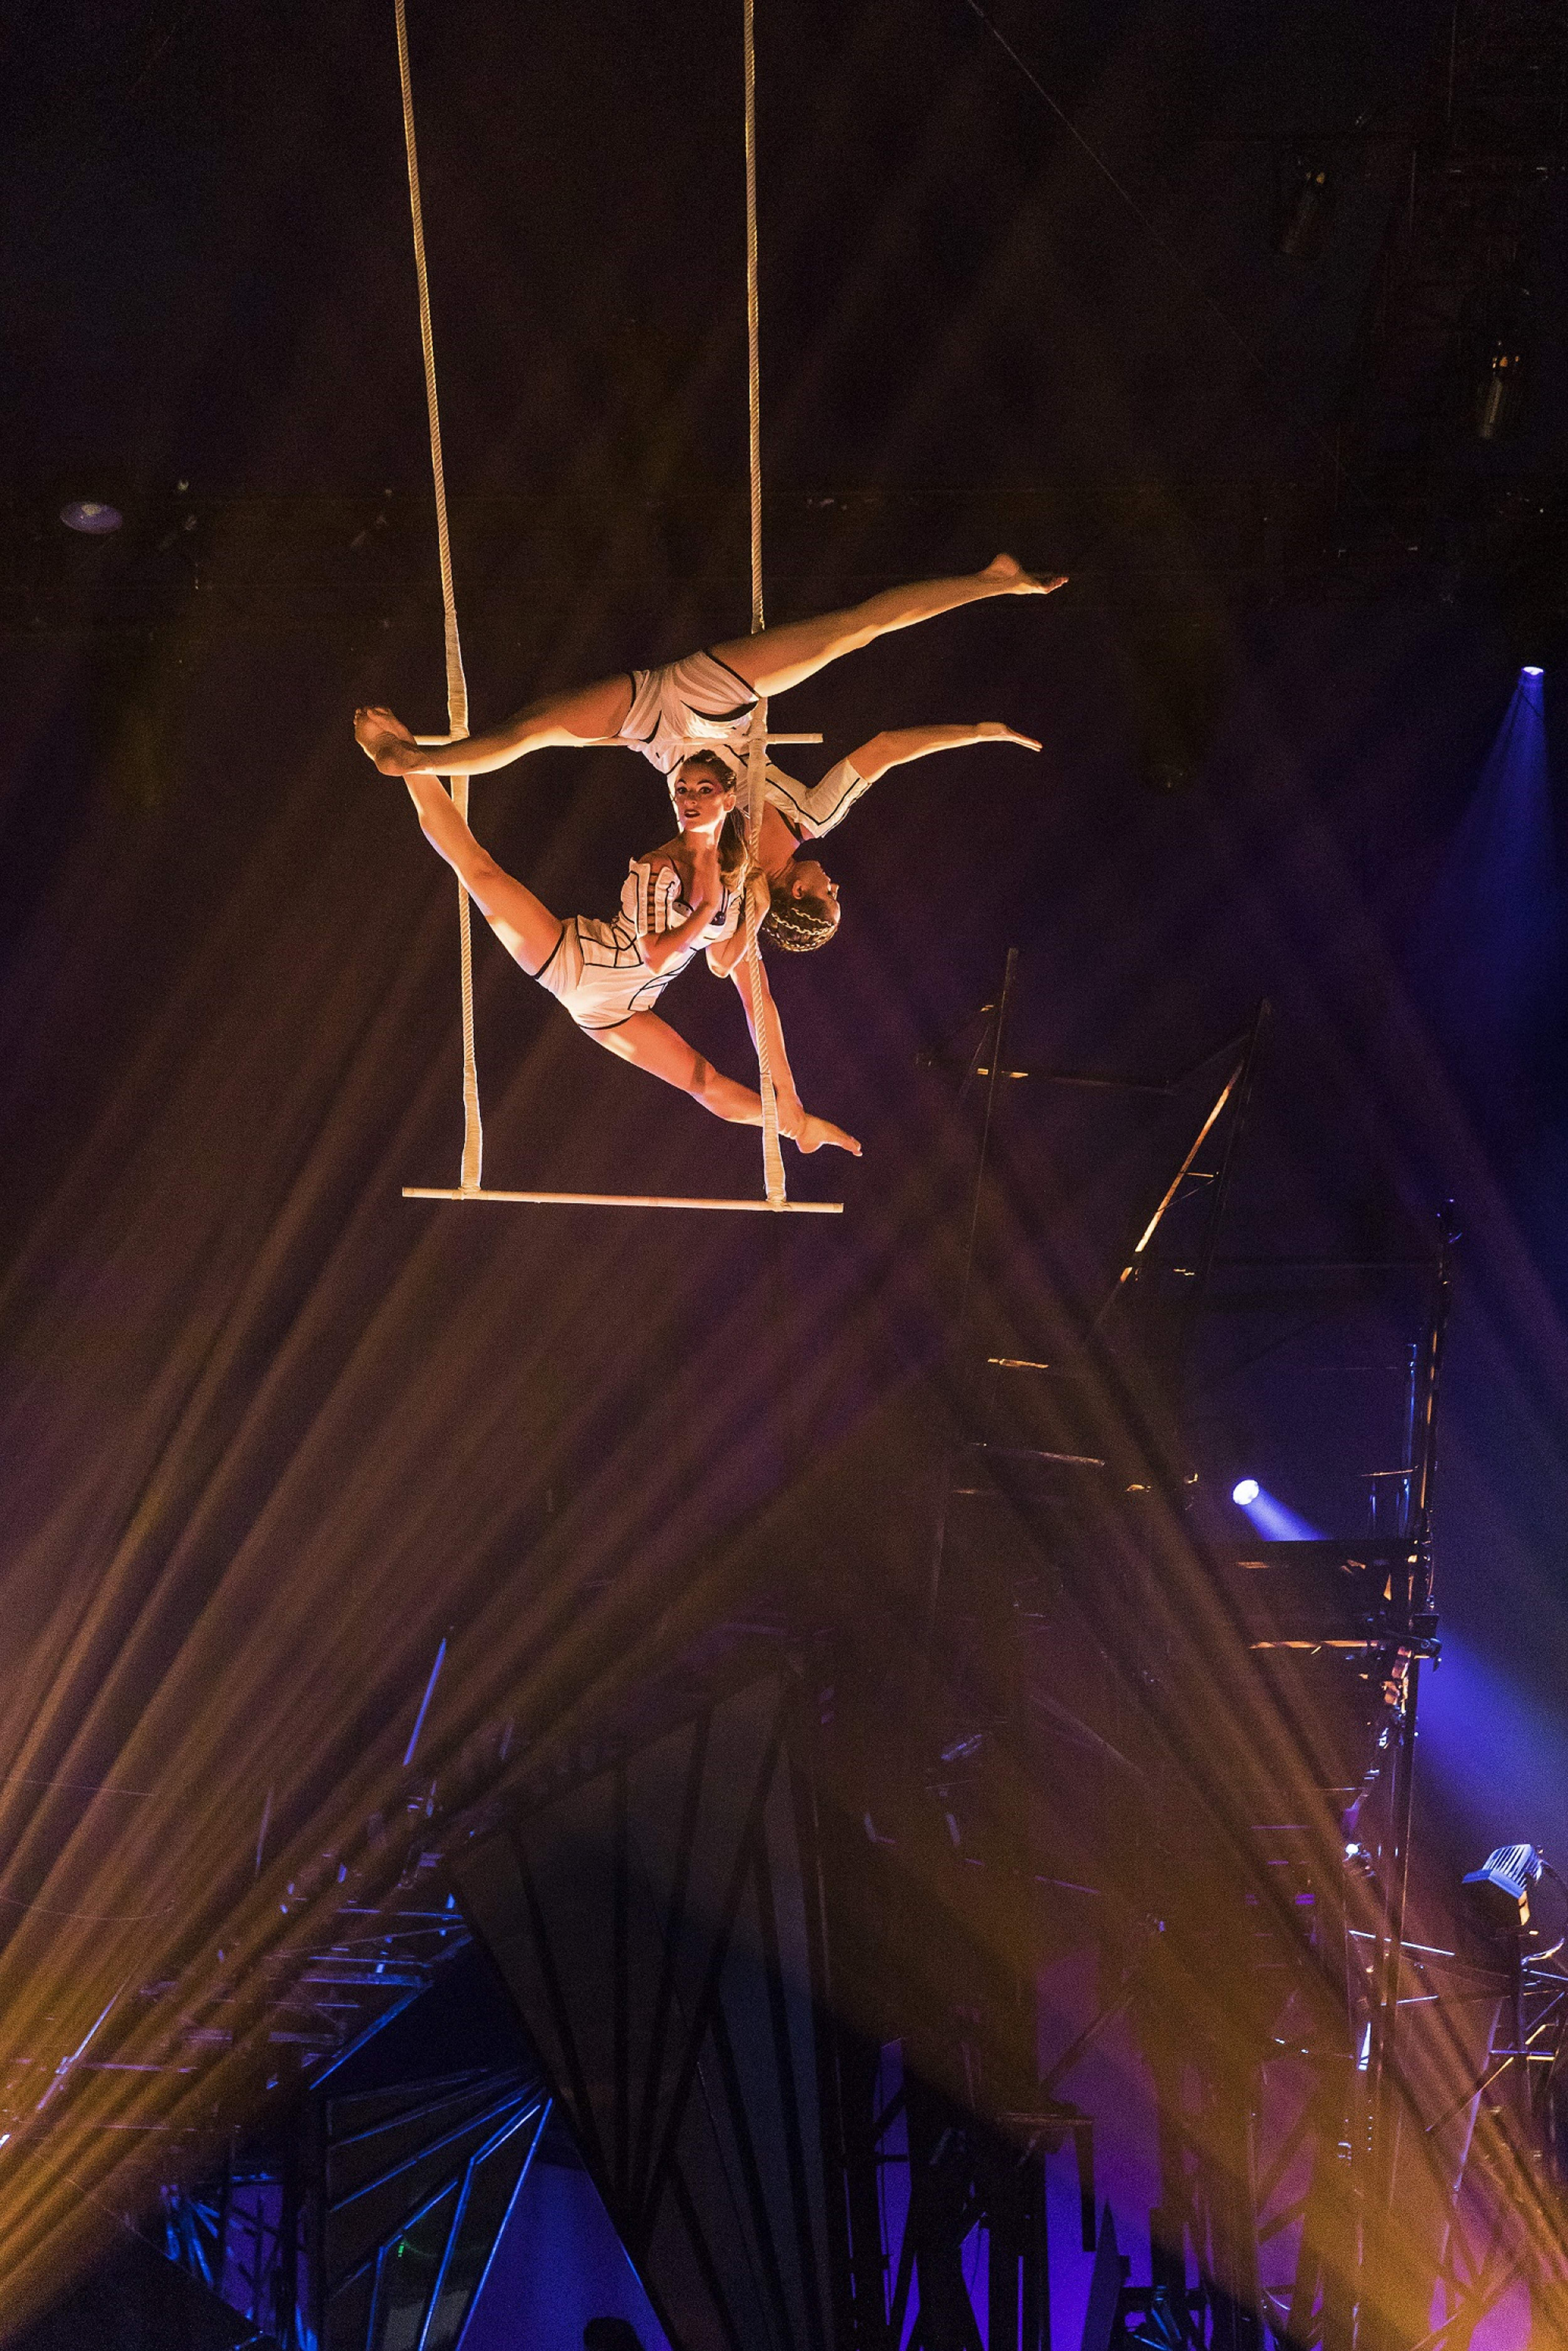 Trapeze act from Bazzar